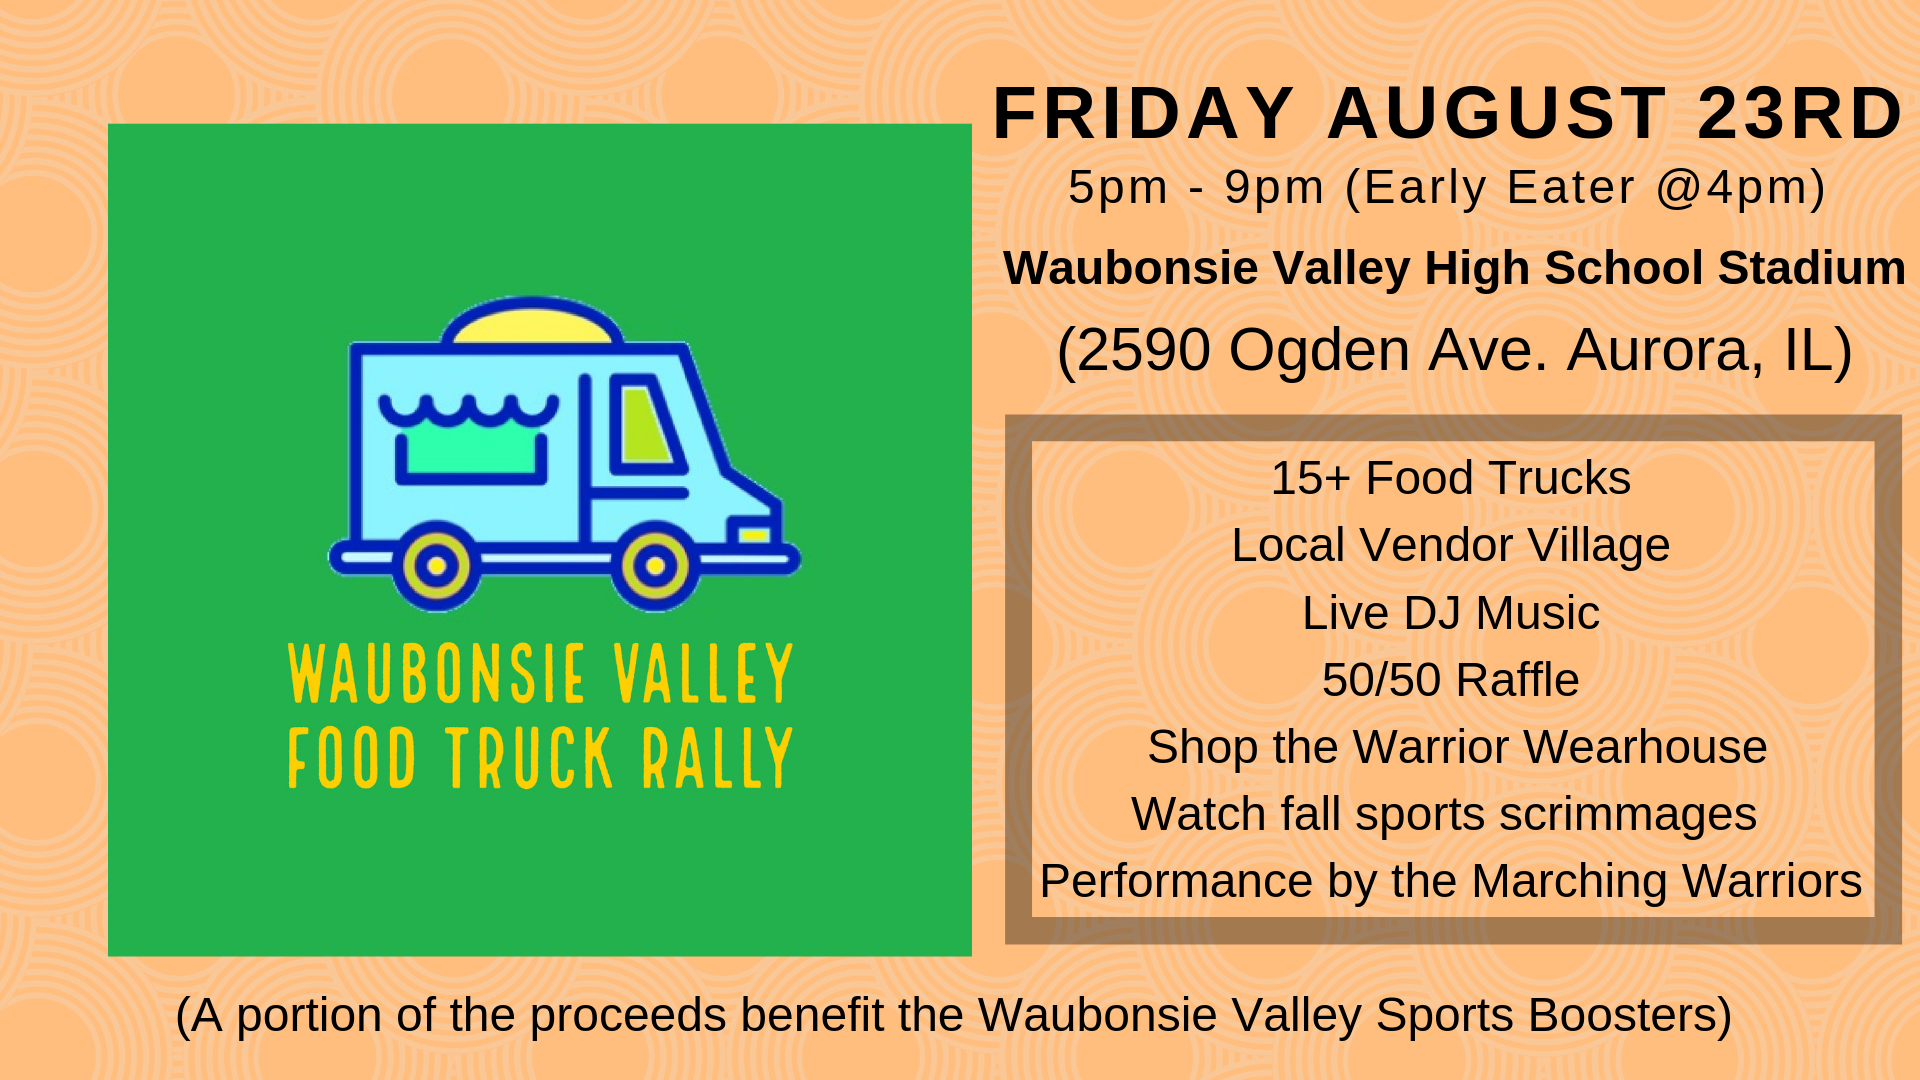 Waubonsie Valley Food Truck Rally